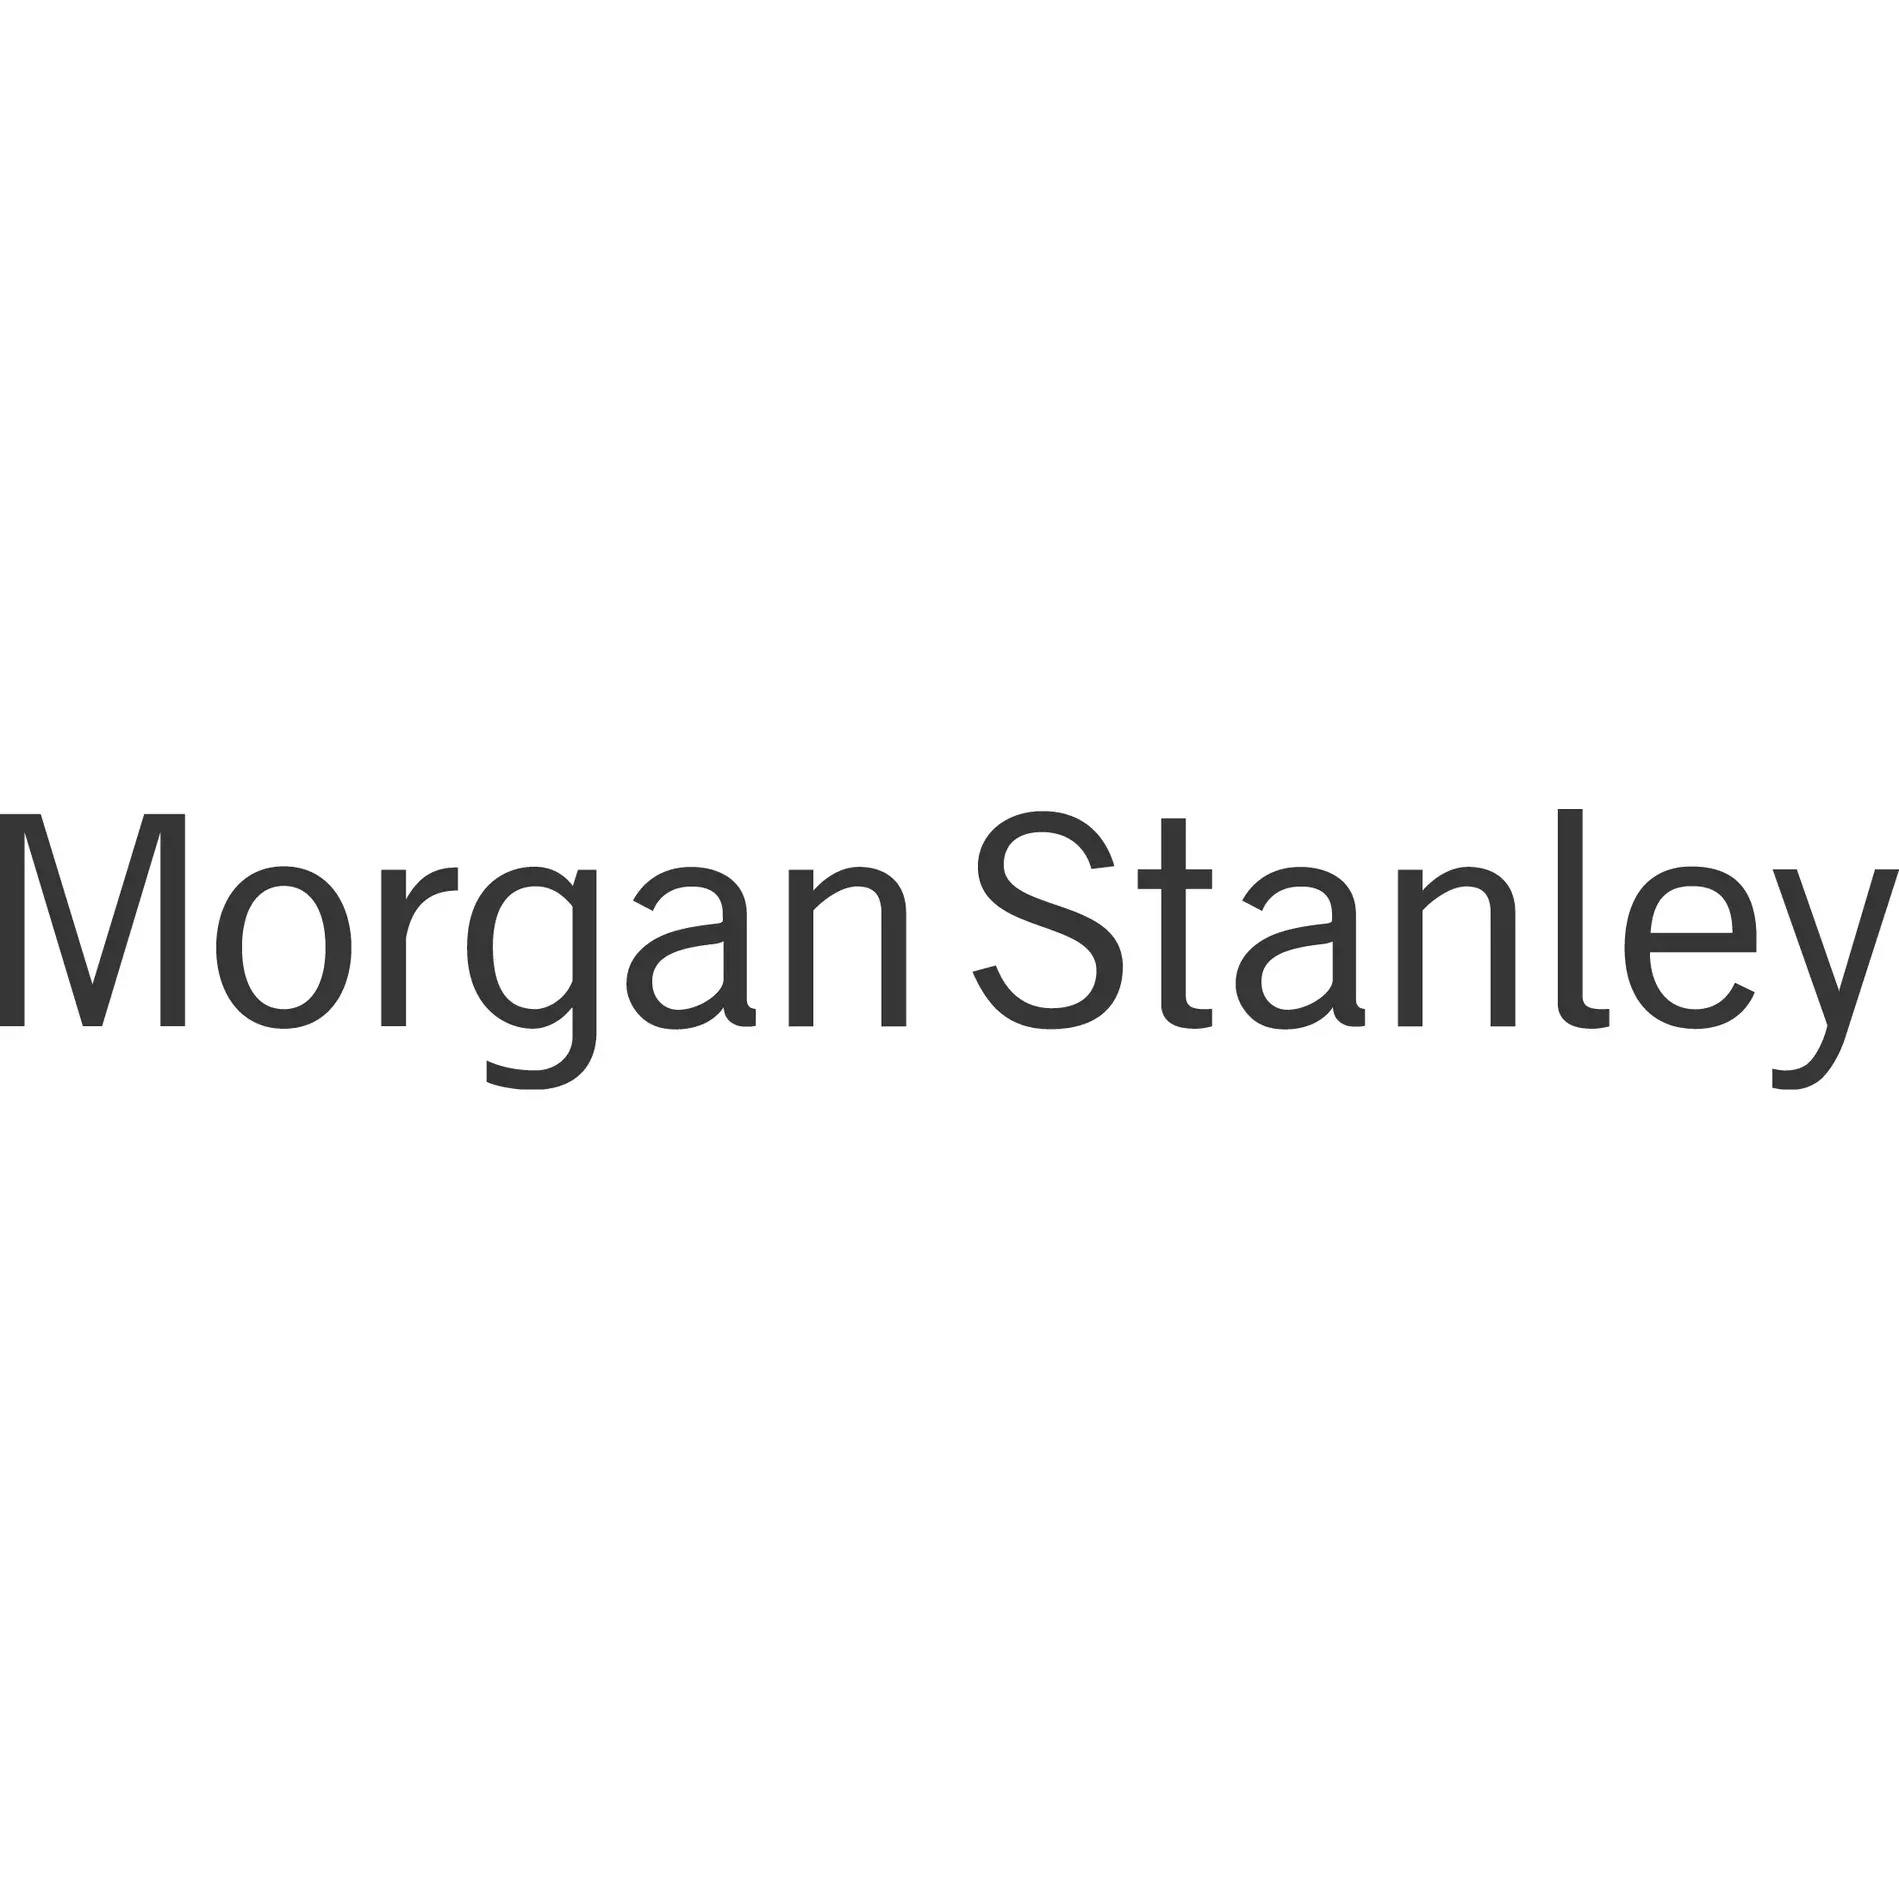 Christopher L. Clark & Shawn W. Gehm - Morgan Stanley | Financial Advisor in Green Bay,Wisconsin